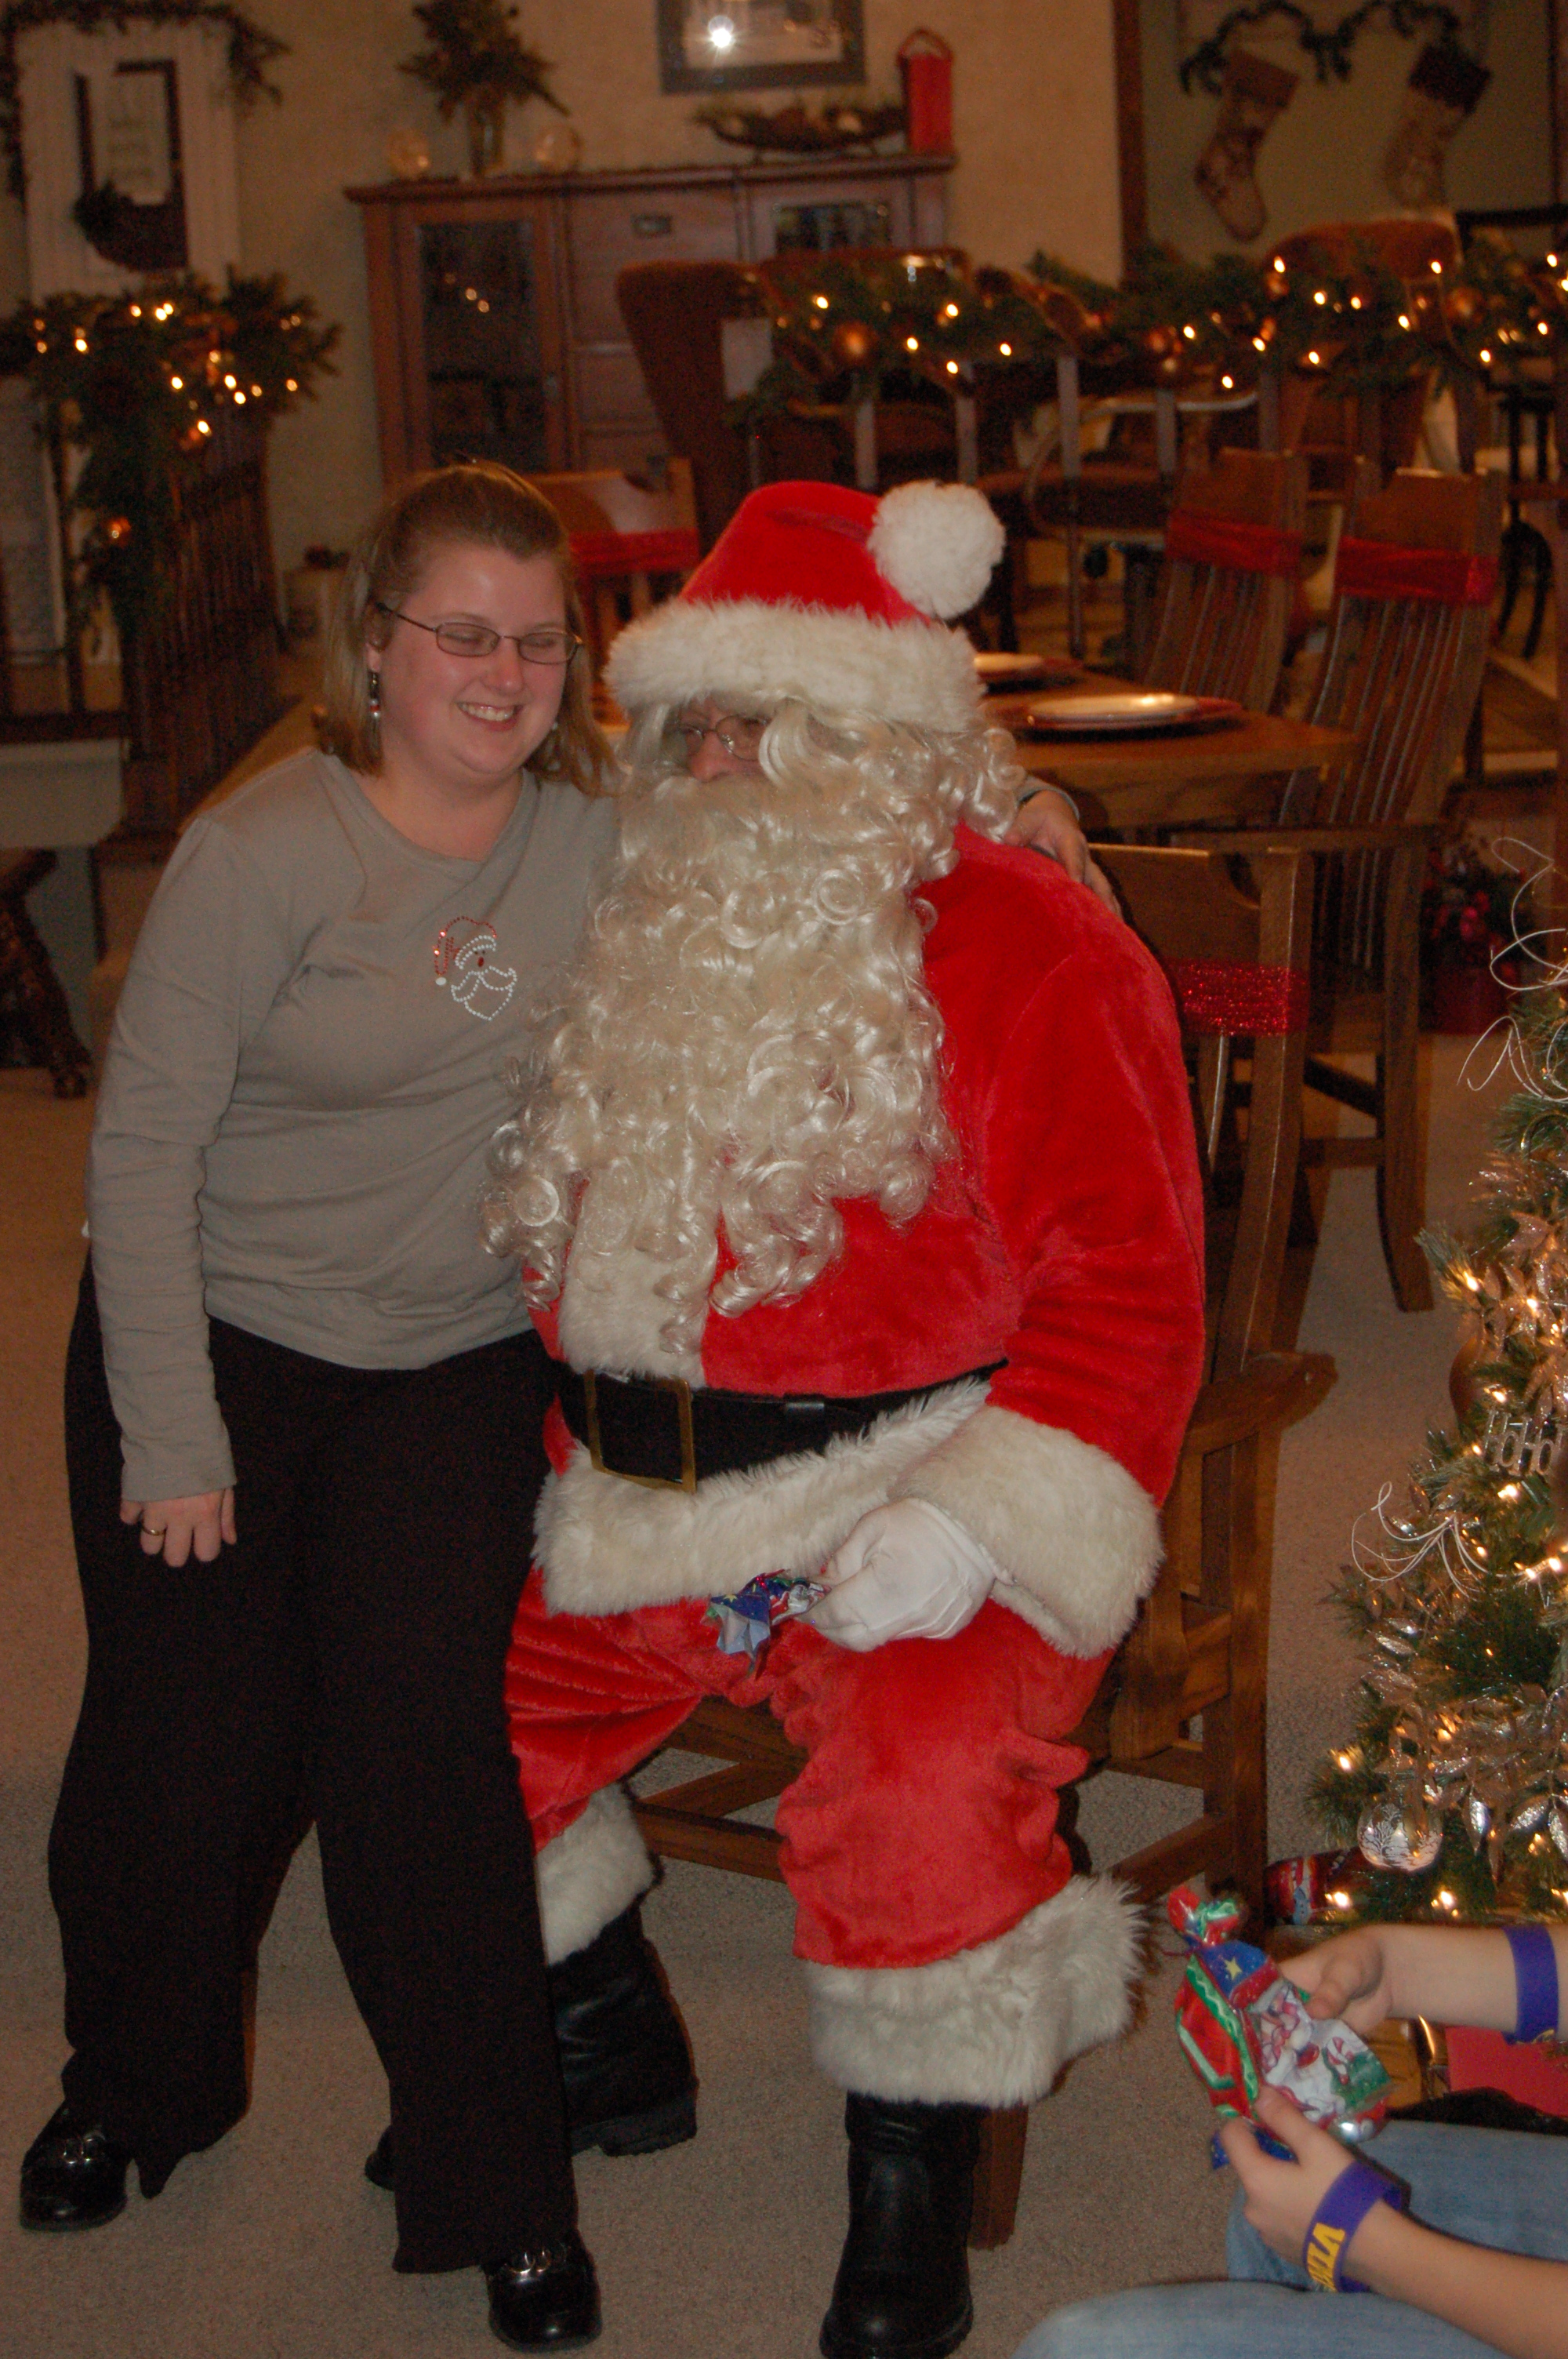 I love that Sandy will put up with the silly things my family does. Including making everyone (even adults) sit on Santa's lap at Christmas time.